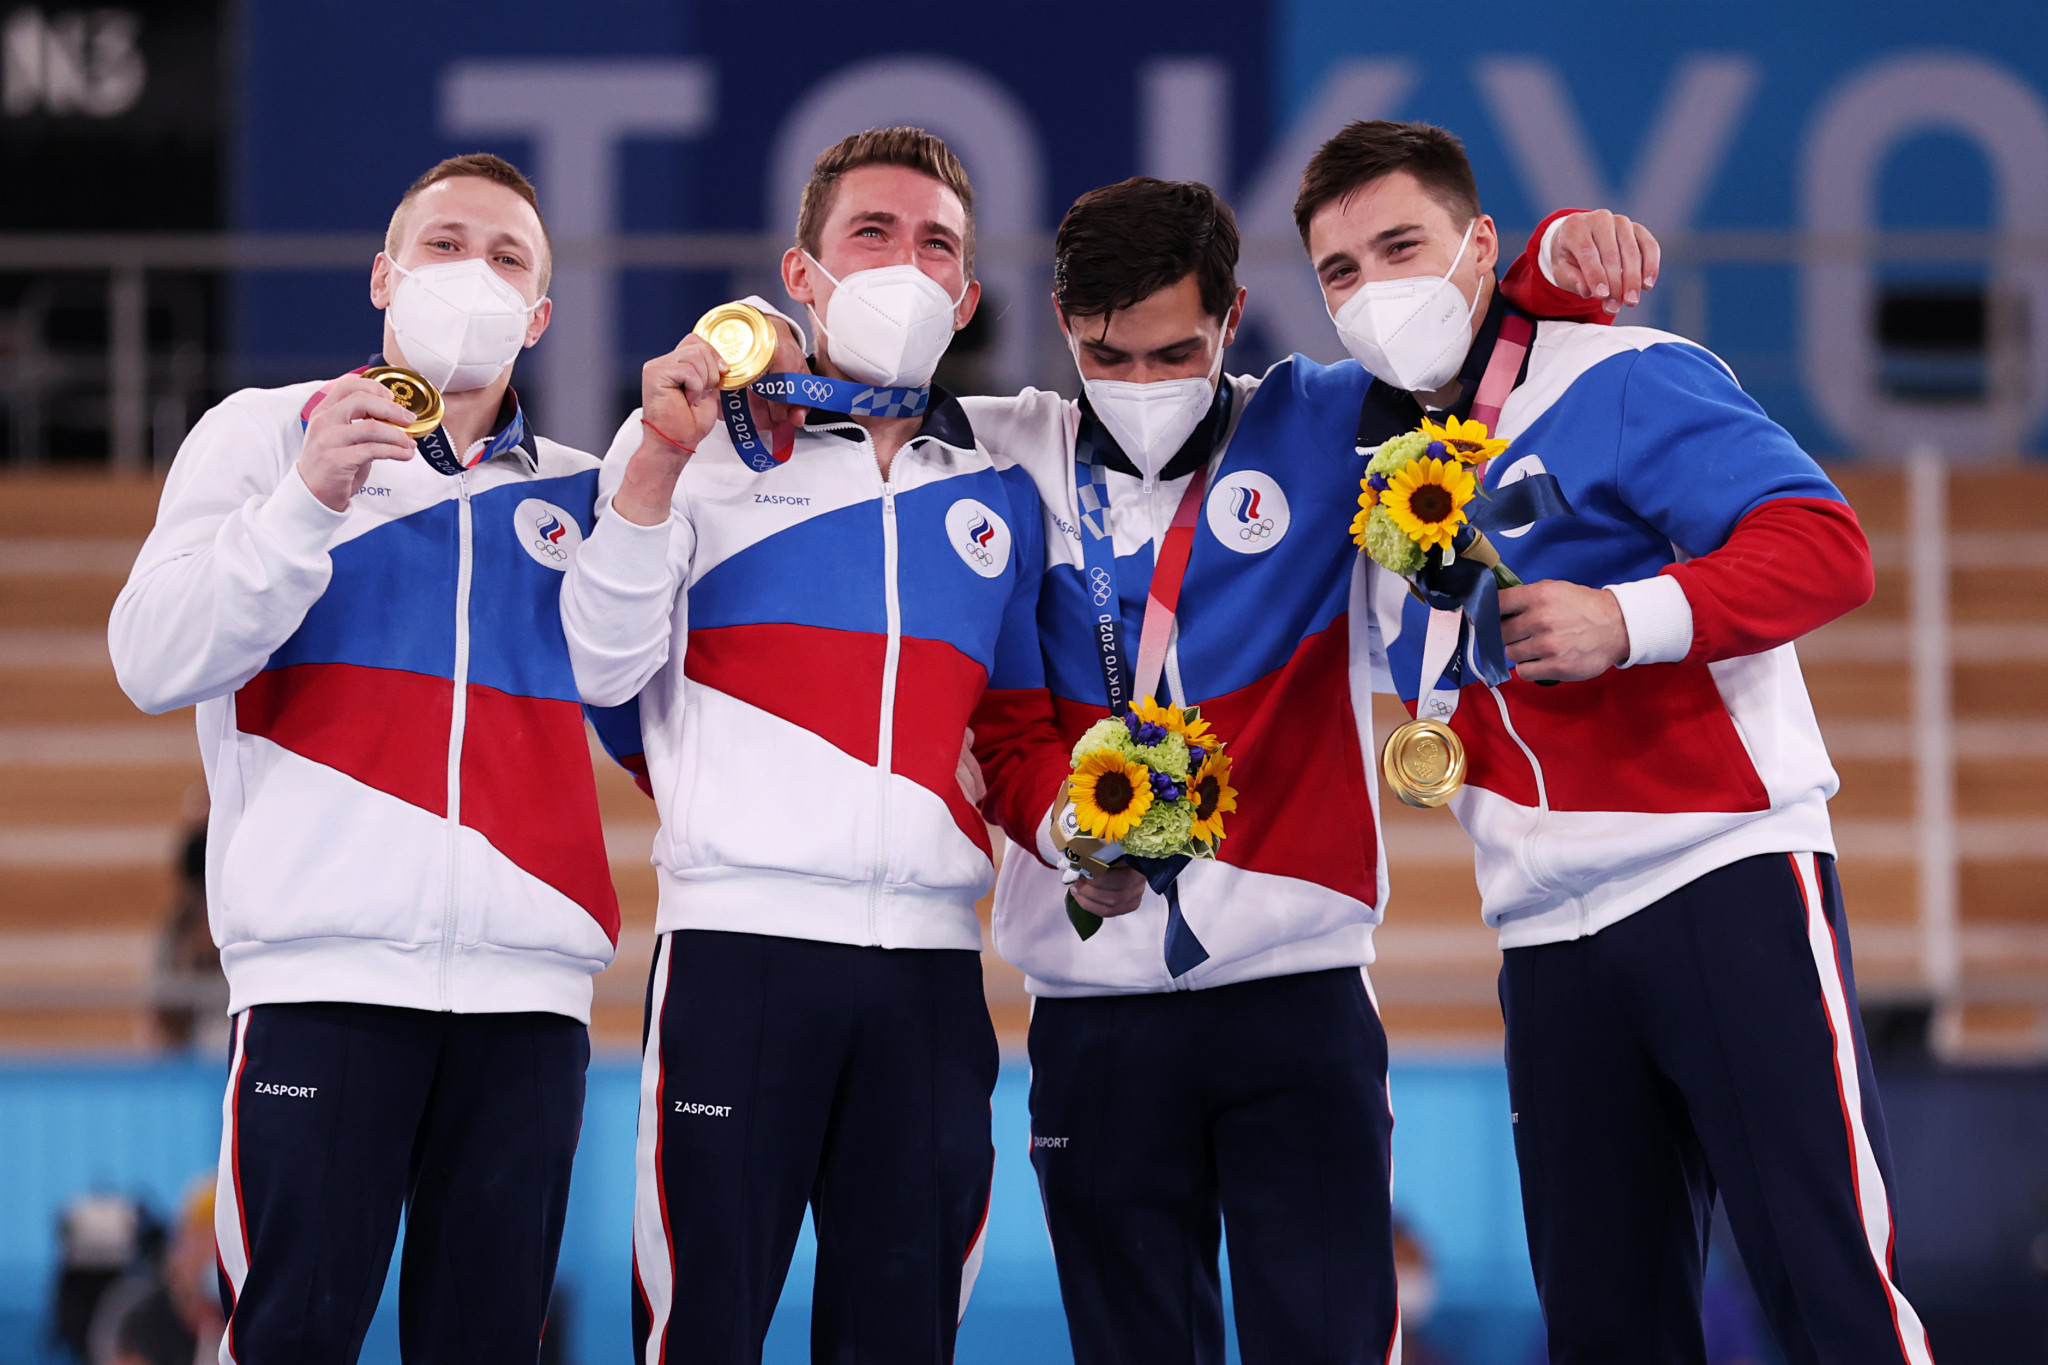 The first gymnastic gold medal of Tokyo 2020 went the way of ROC, with a points total of 262.500 narrowly enough to win a high-quality men's team final ©Getty Images